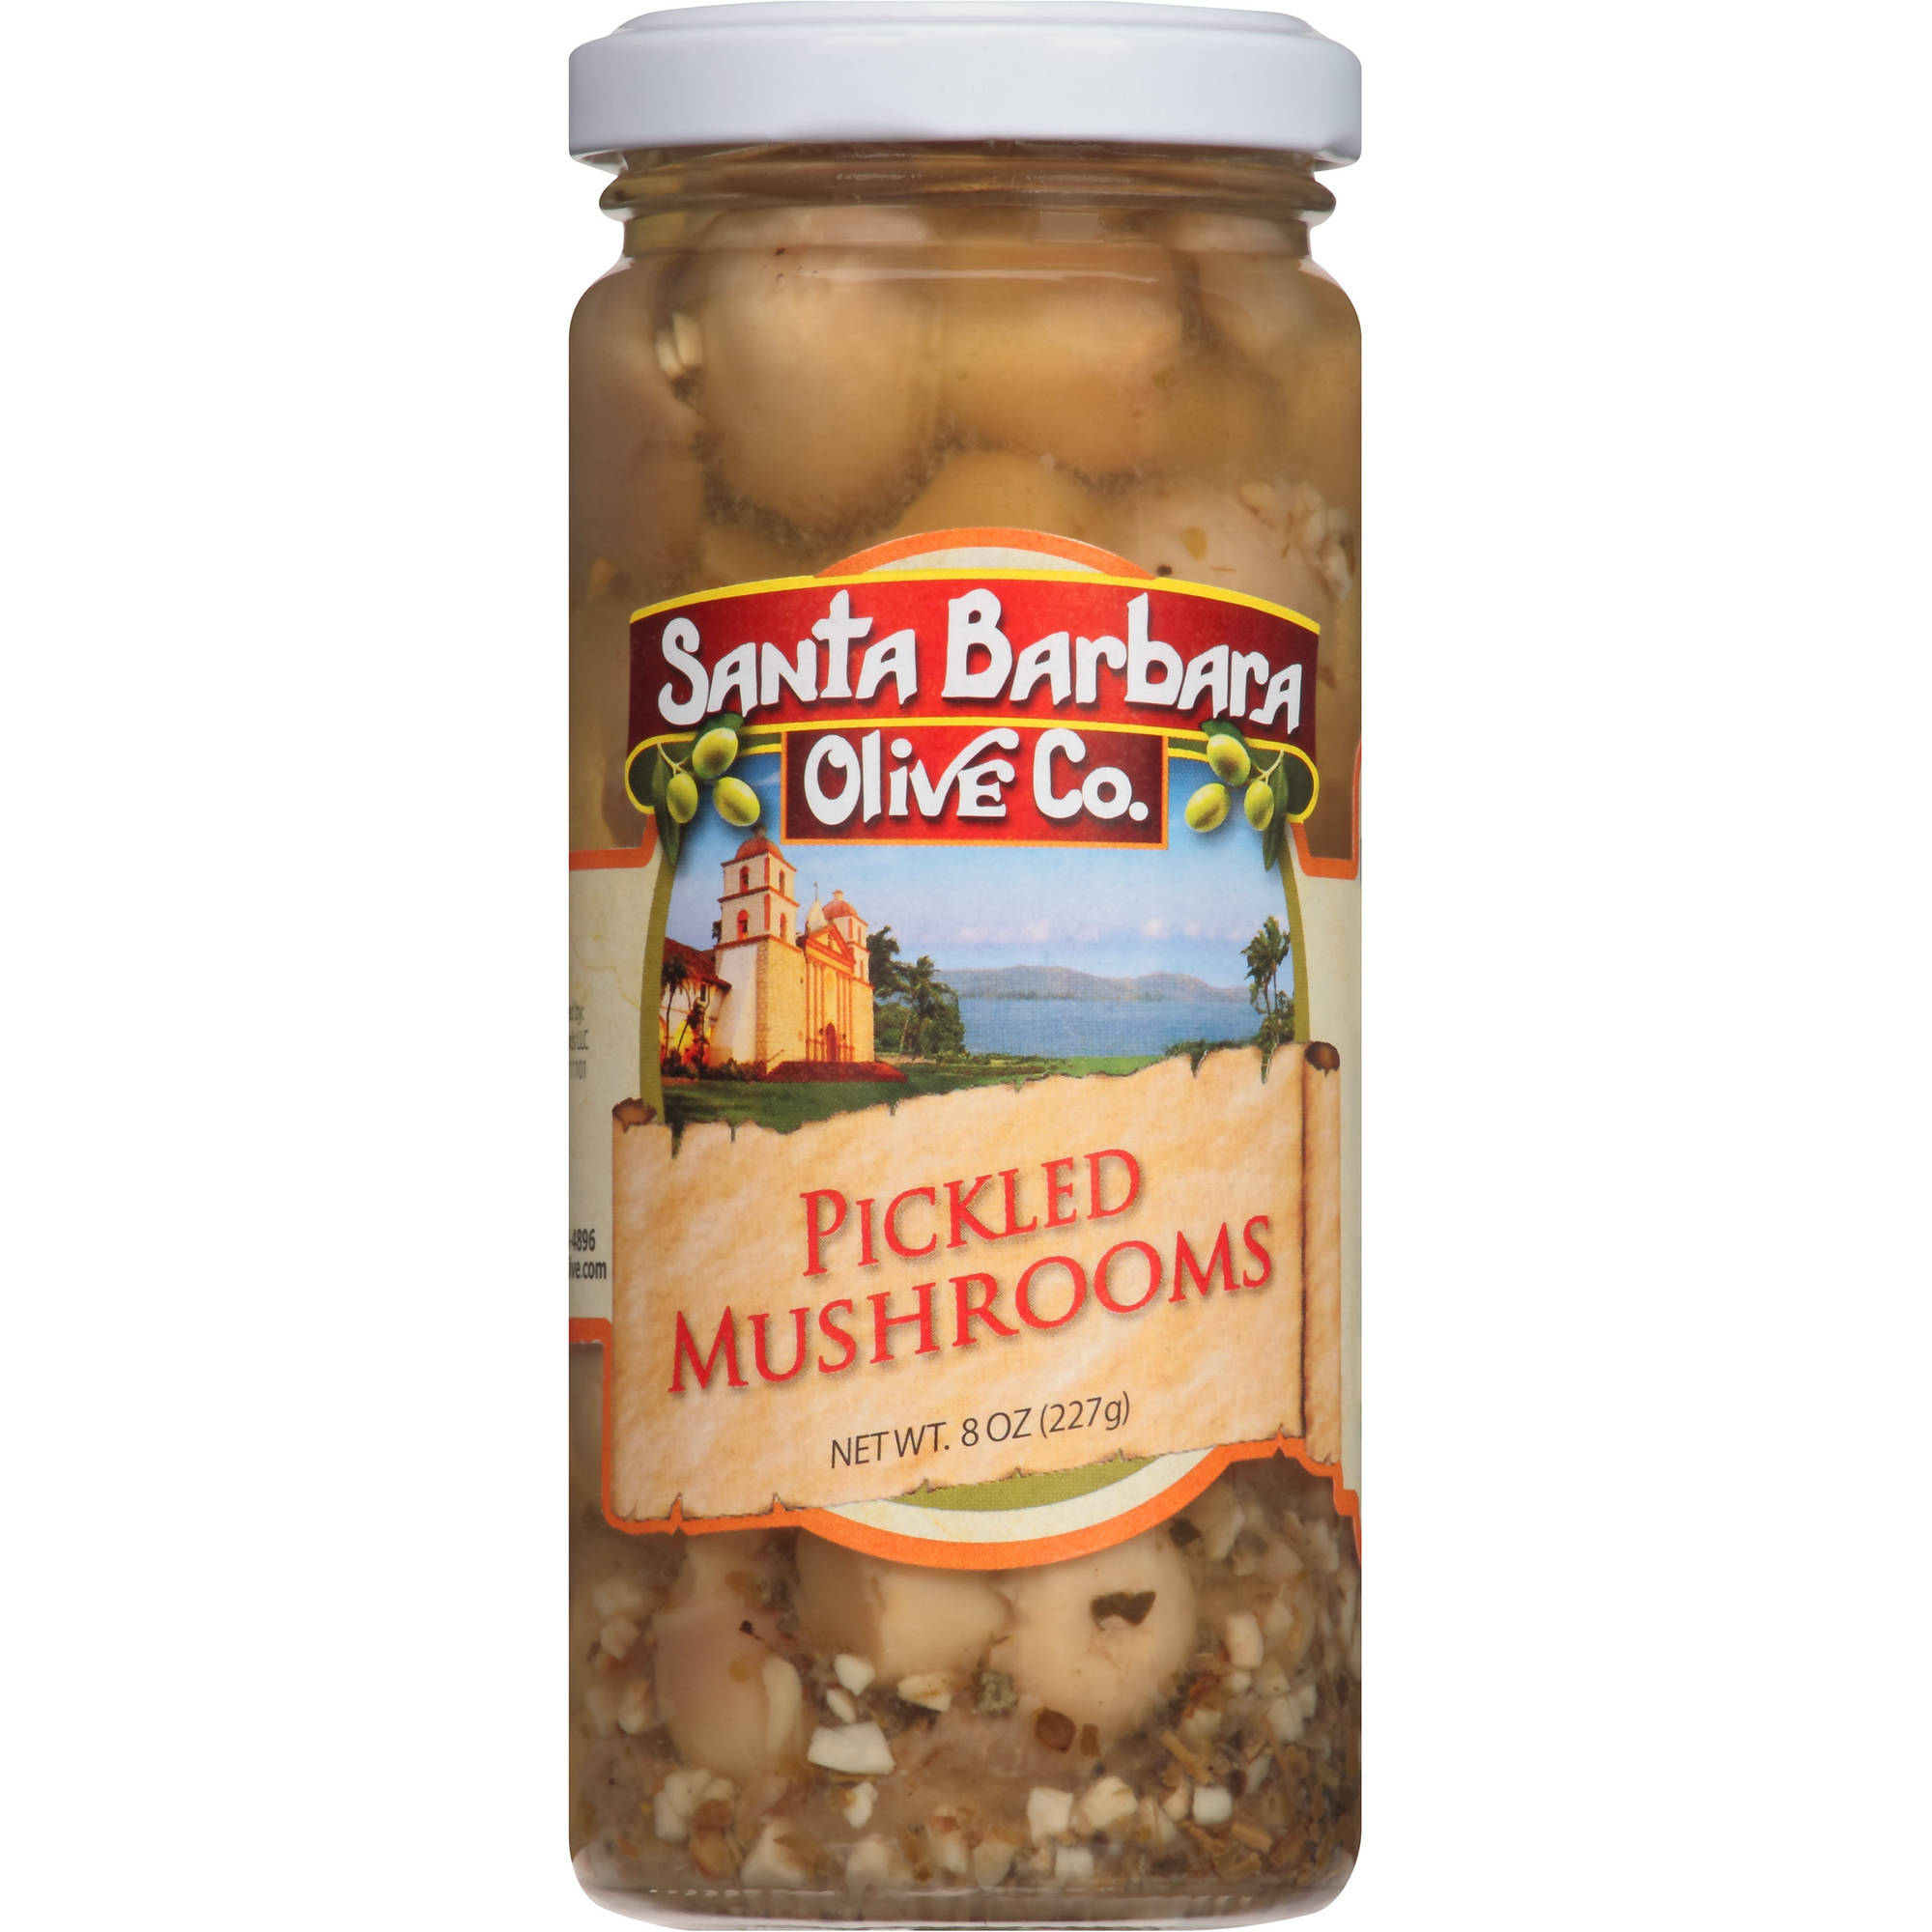 Santa Barbara Olive Co. Pickled Mushrooms, 8 oz